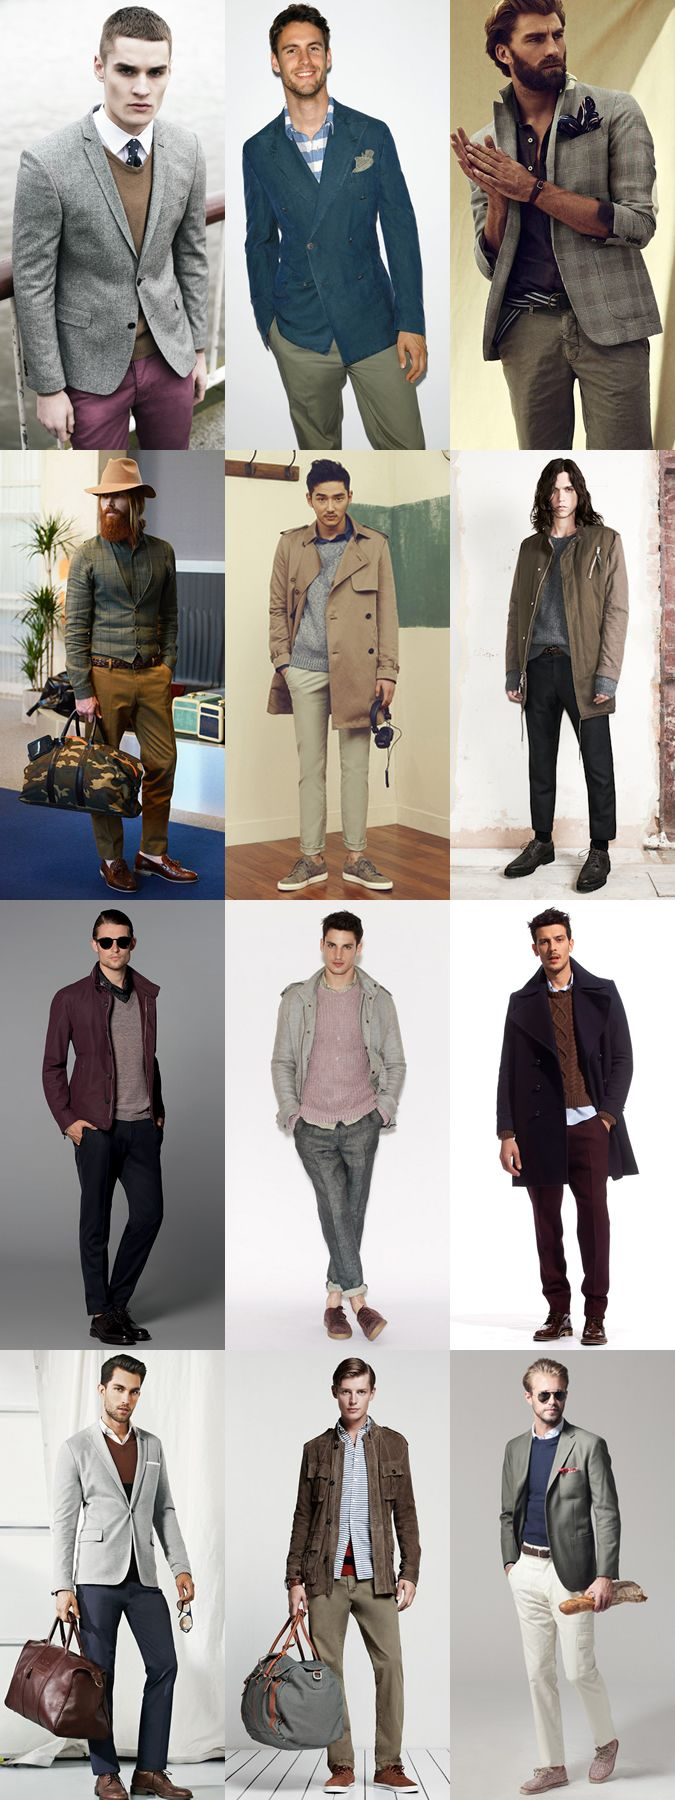 color mixing | Men's Winter Fall Style Fashion | Pinterest